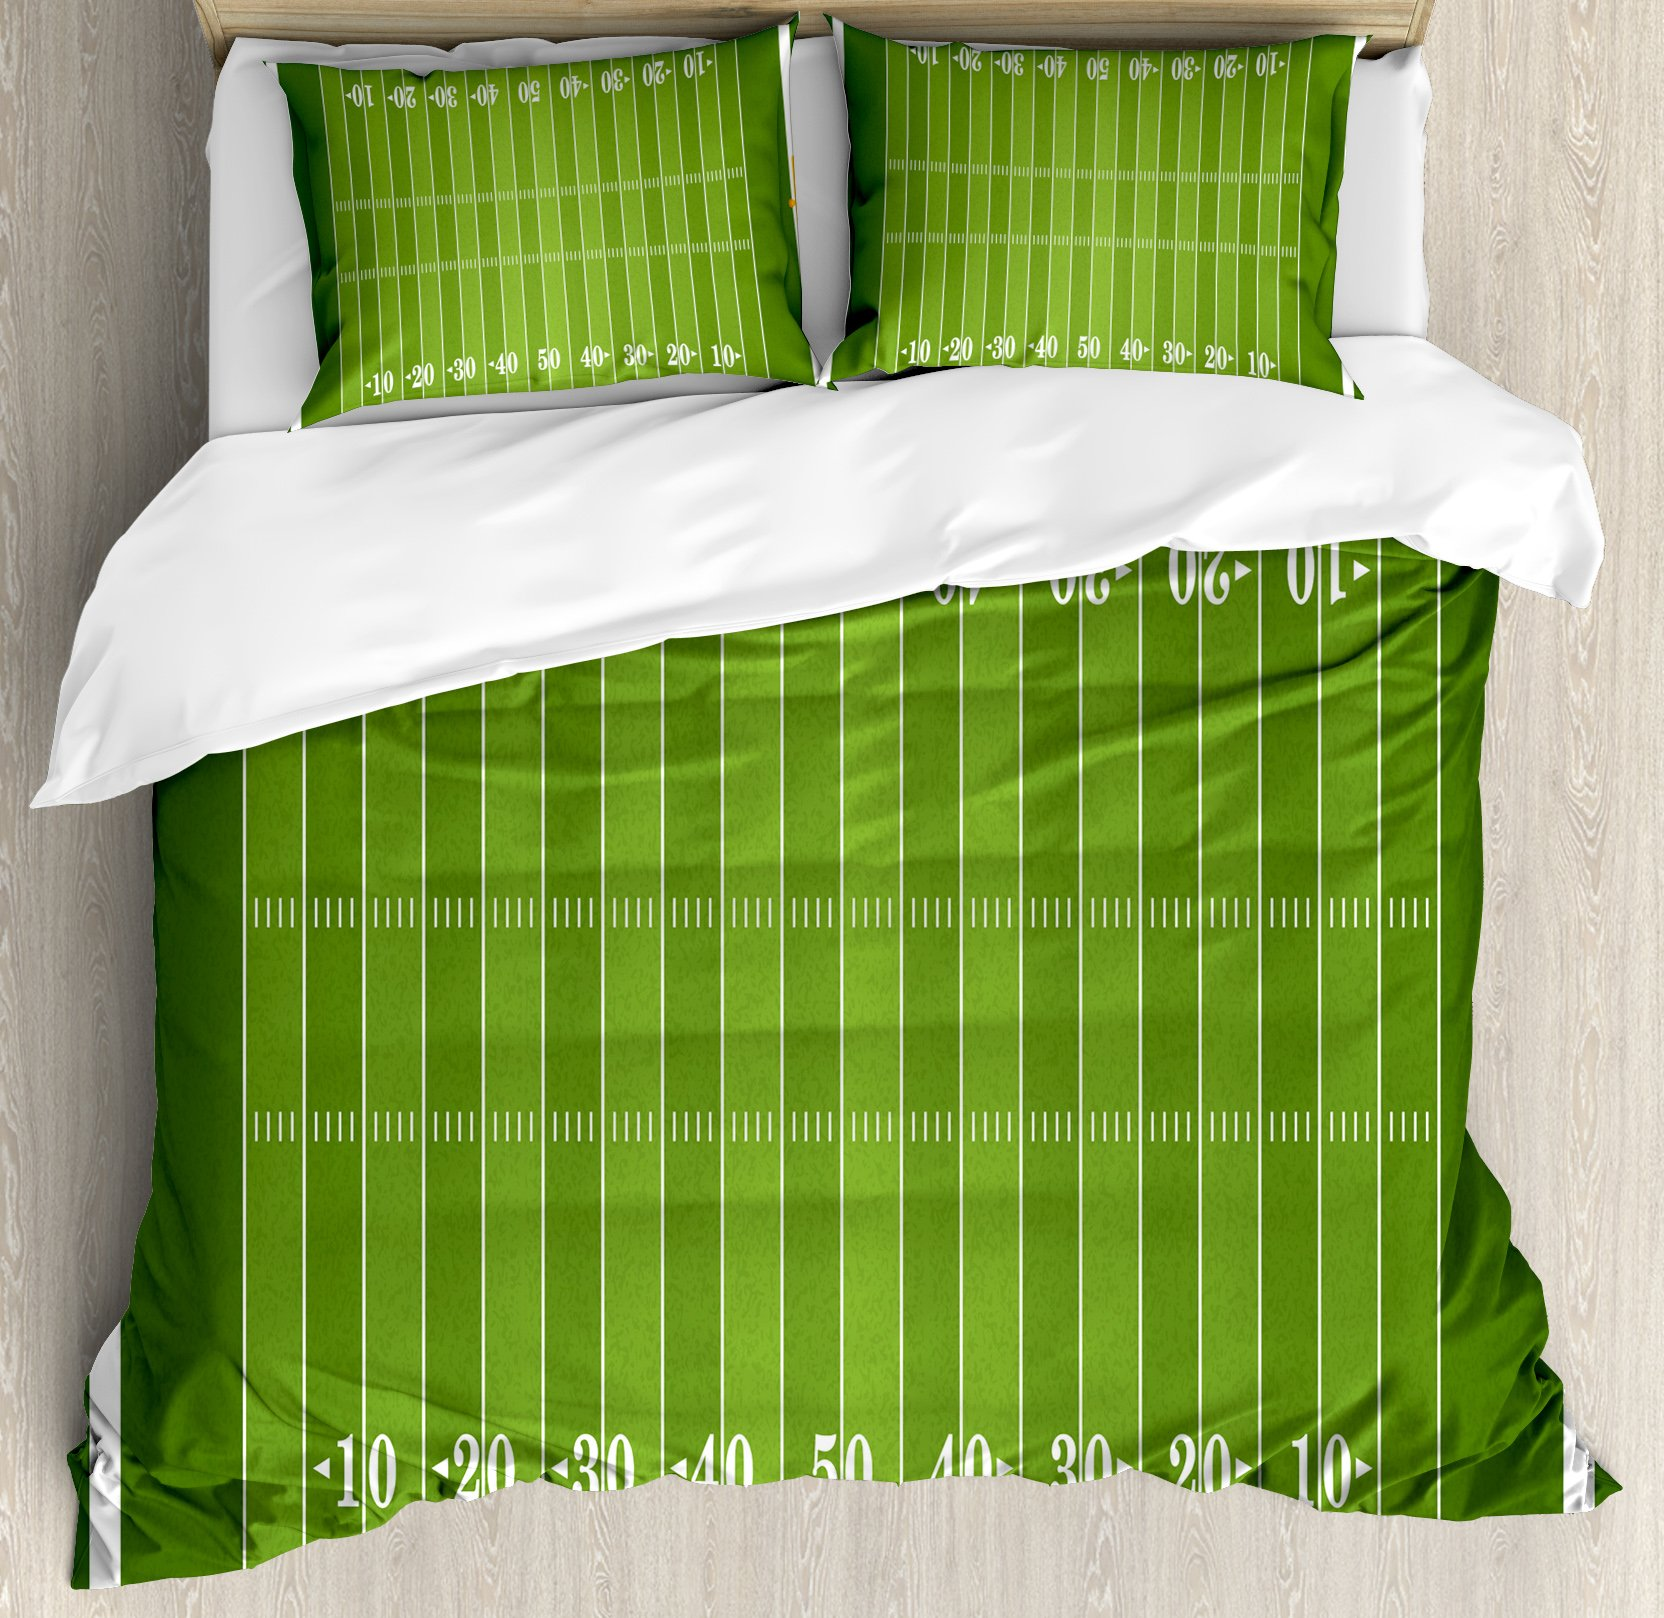 Football Queen Size Duvet Cover Set by Ambesonne, Sports Field in Green Gridiron Yard Competitive Games College Teamwork Superbowl, Decorative 3 Piece Bedding Set with 2 Pillow Shams, Green White